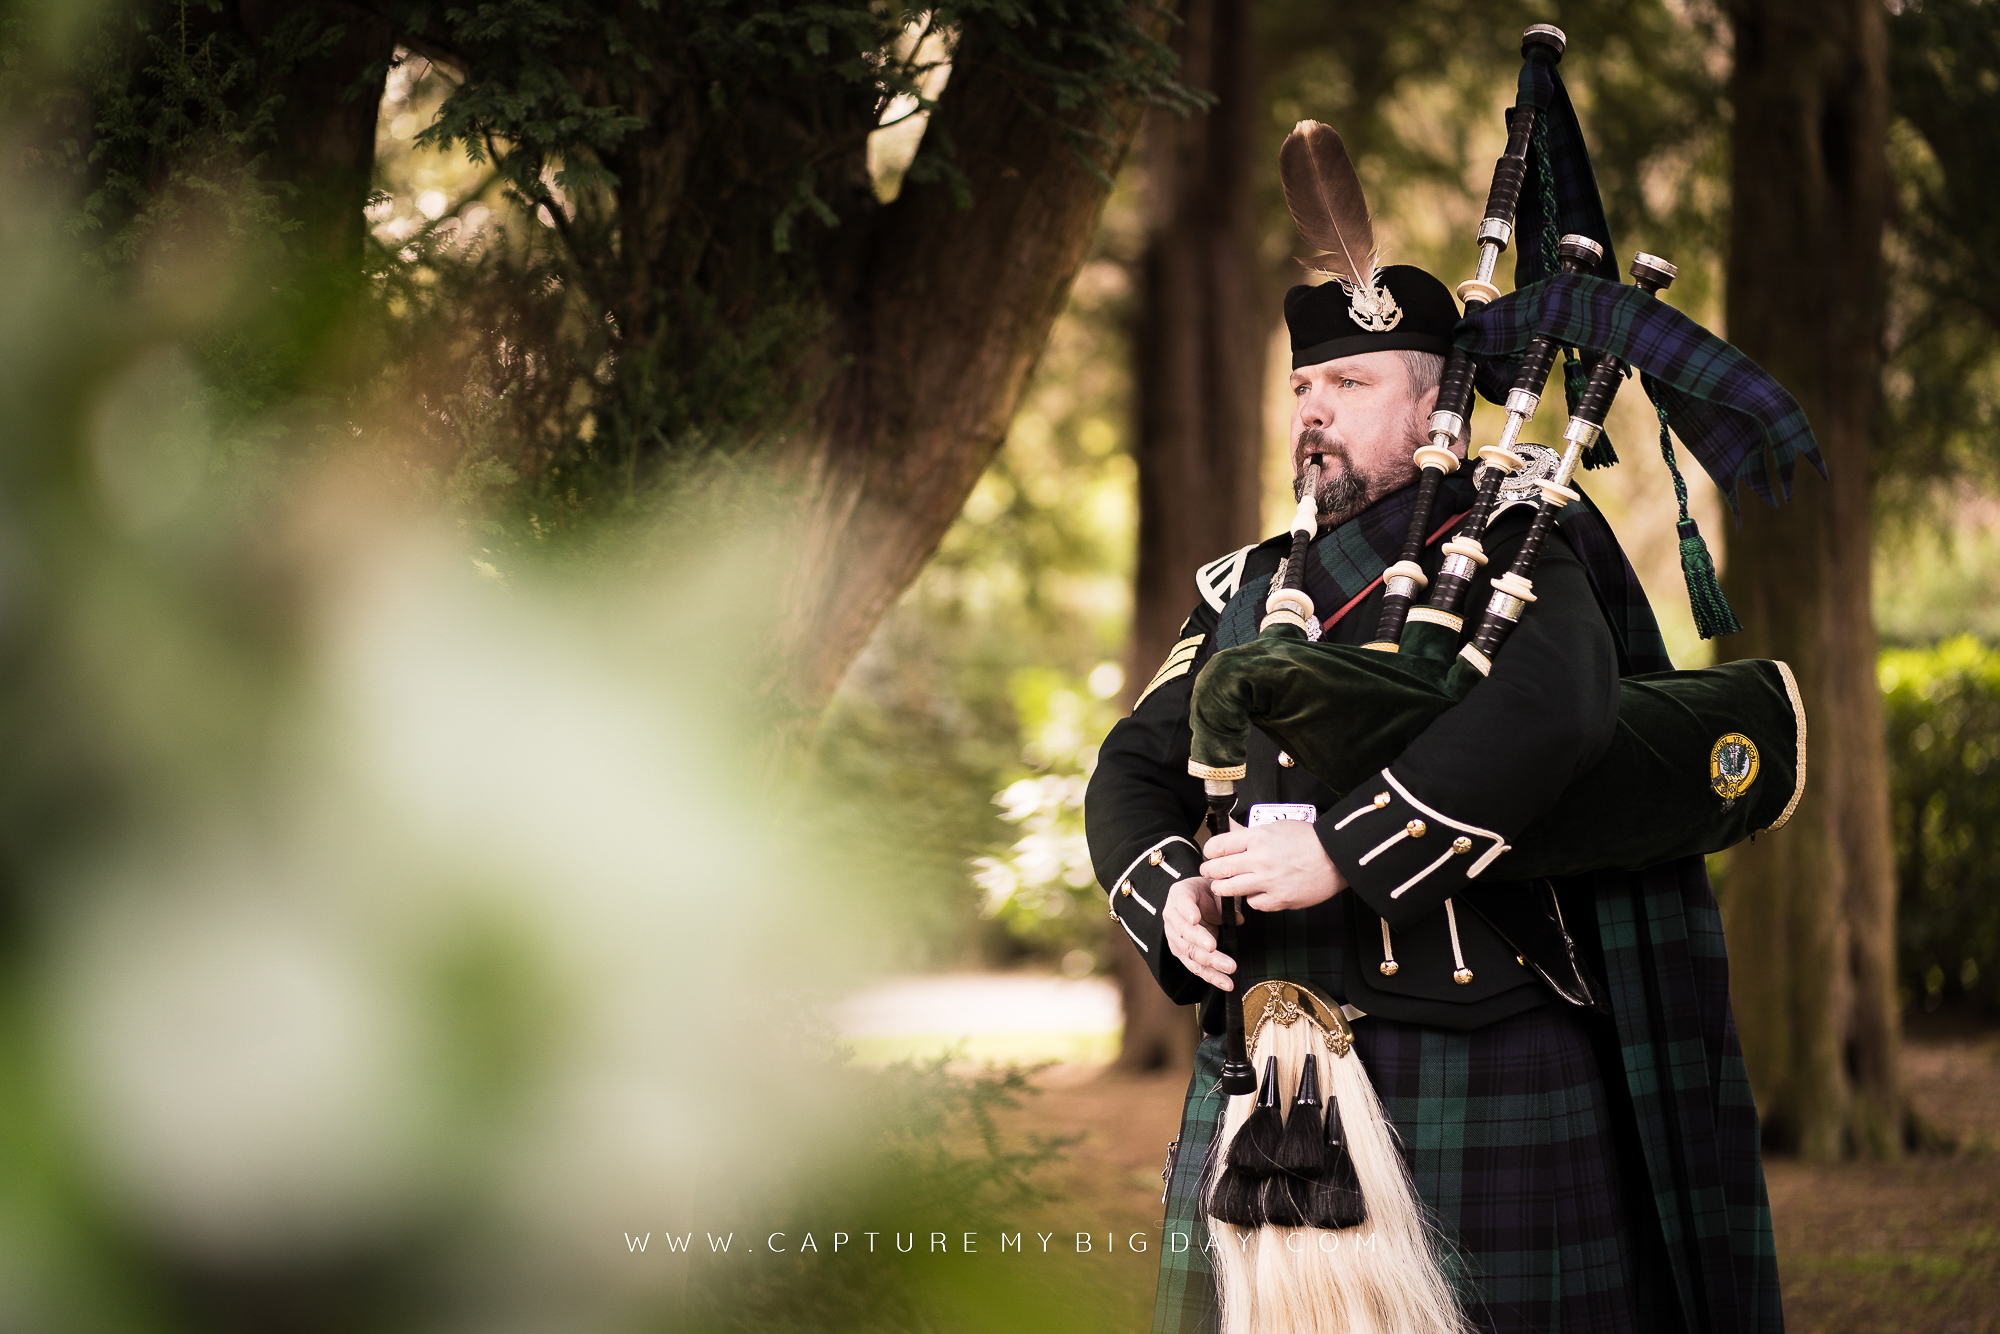 Bagpiper standing next to trees